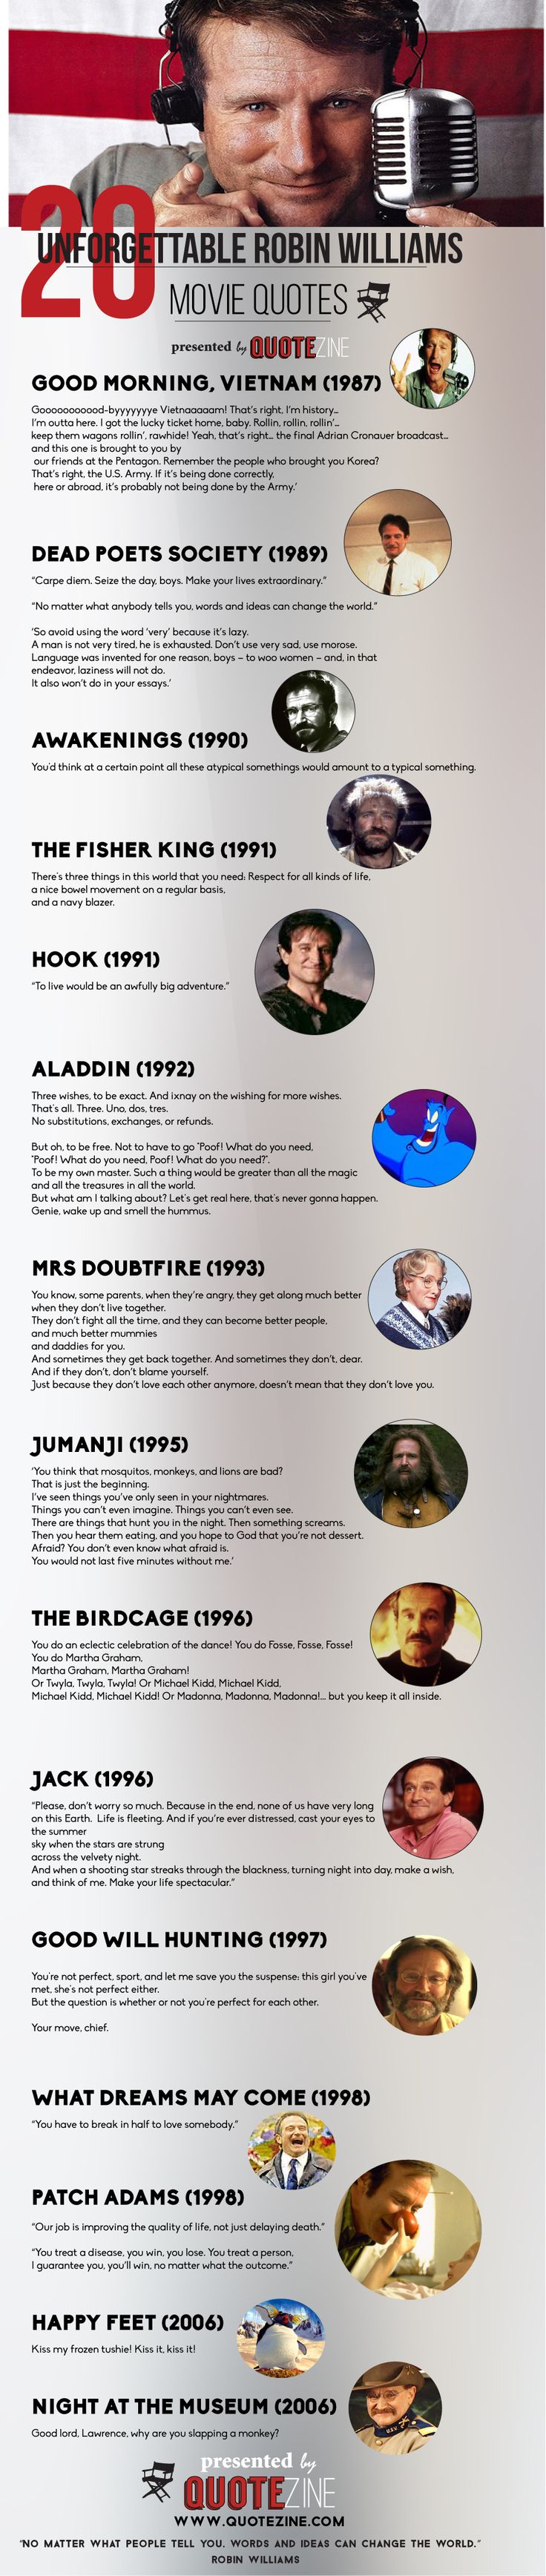 "alt=""robin williams quotes infographic"""